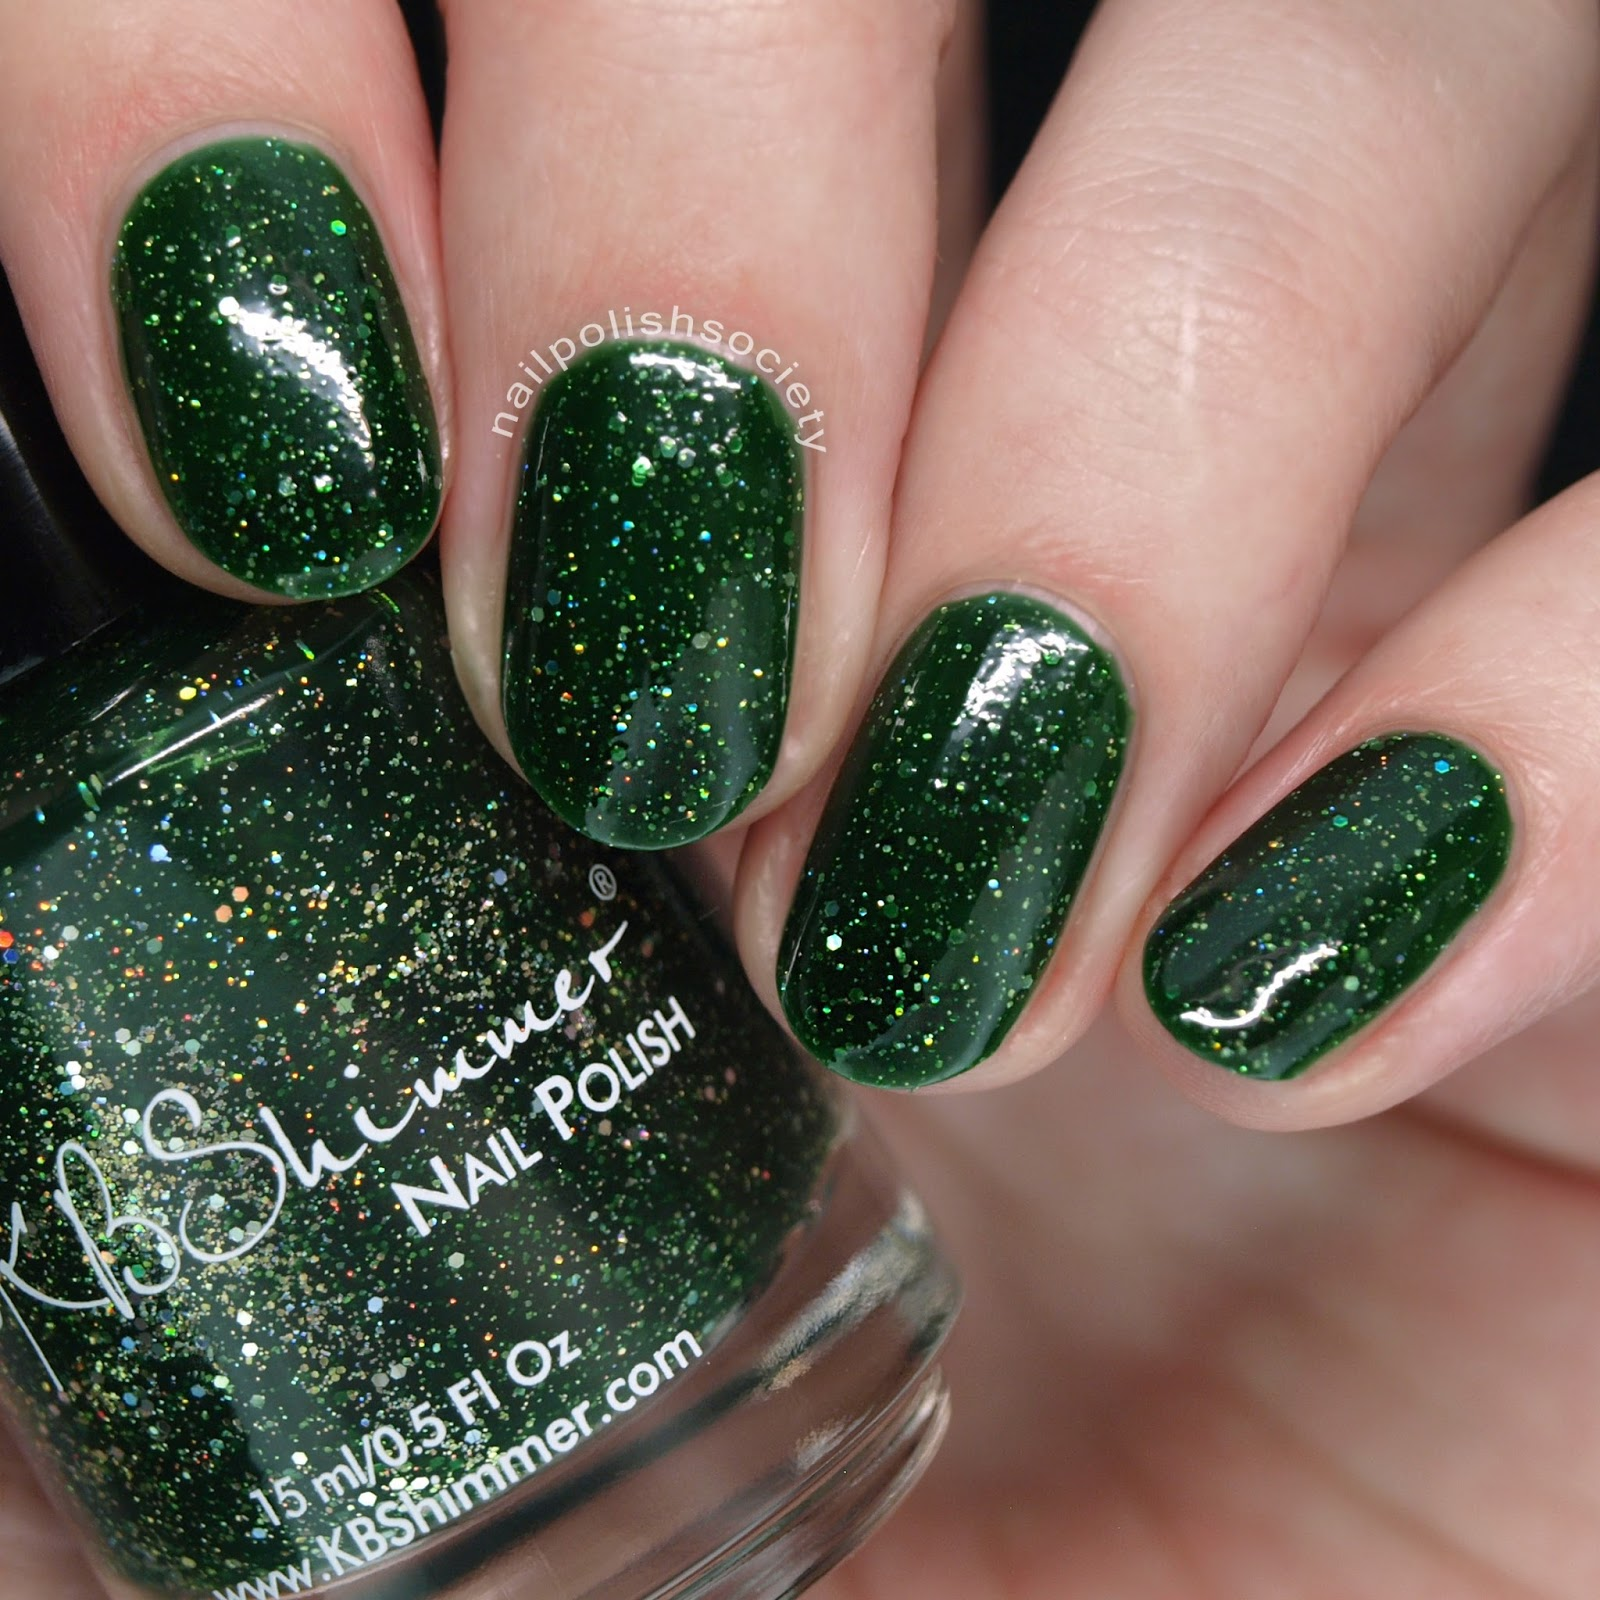 Green Glitter Nail Polish Uk: Nail Polish Society: 15 Gorgeous Green Nail Polishes For